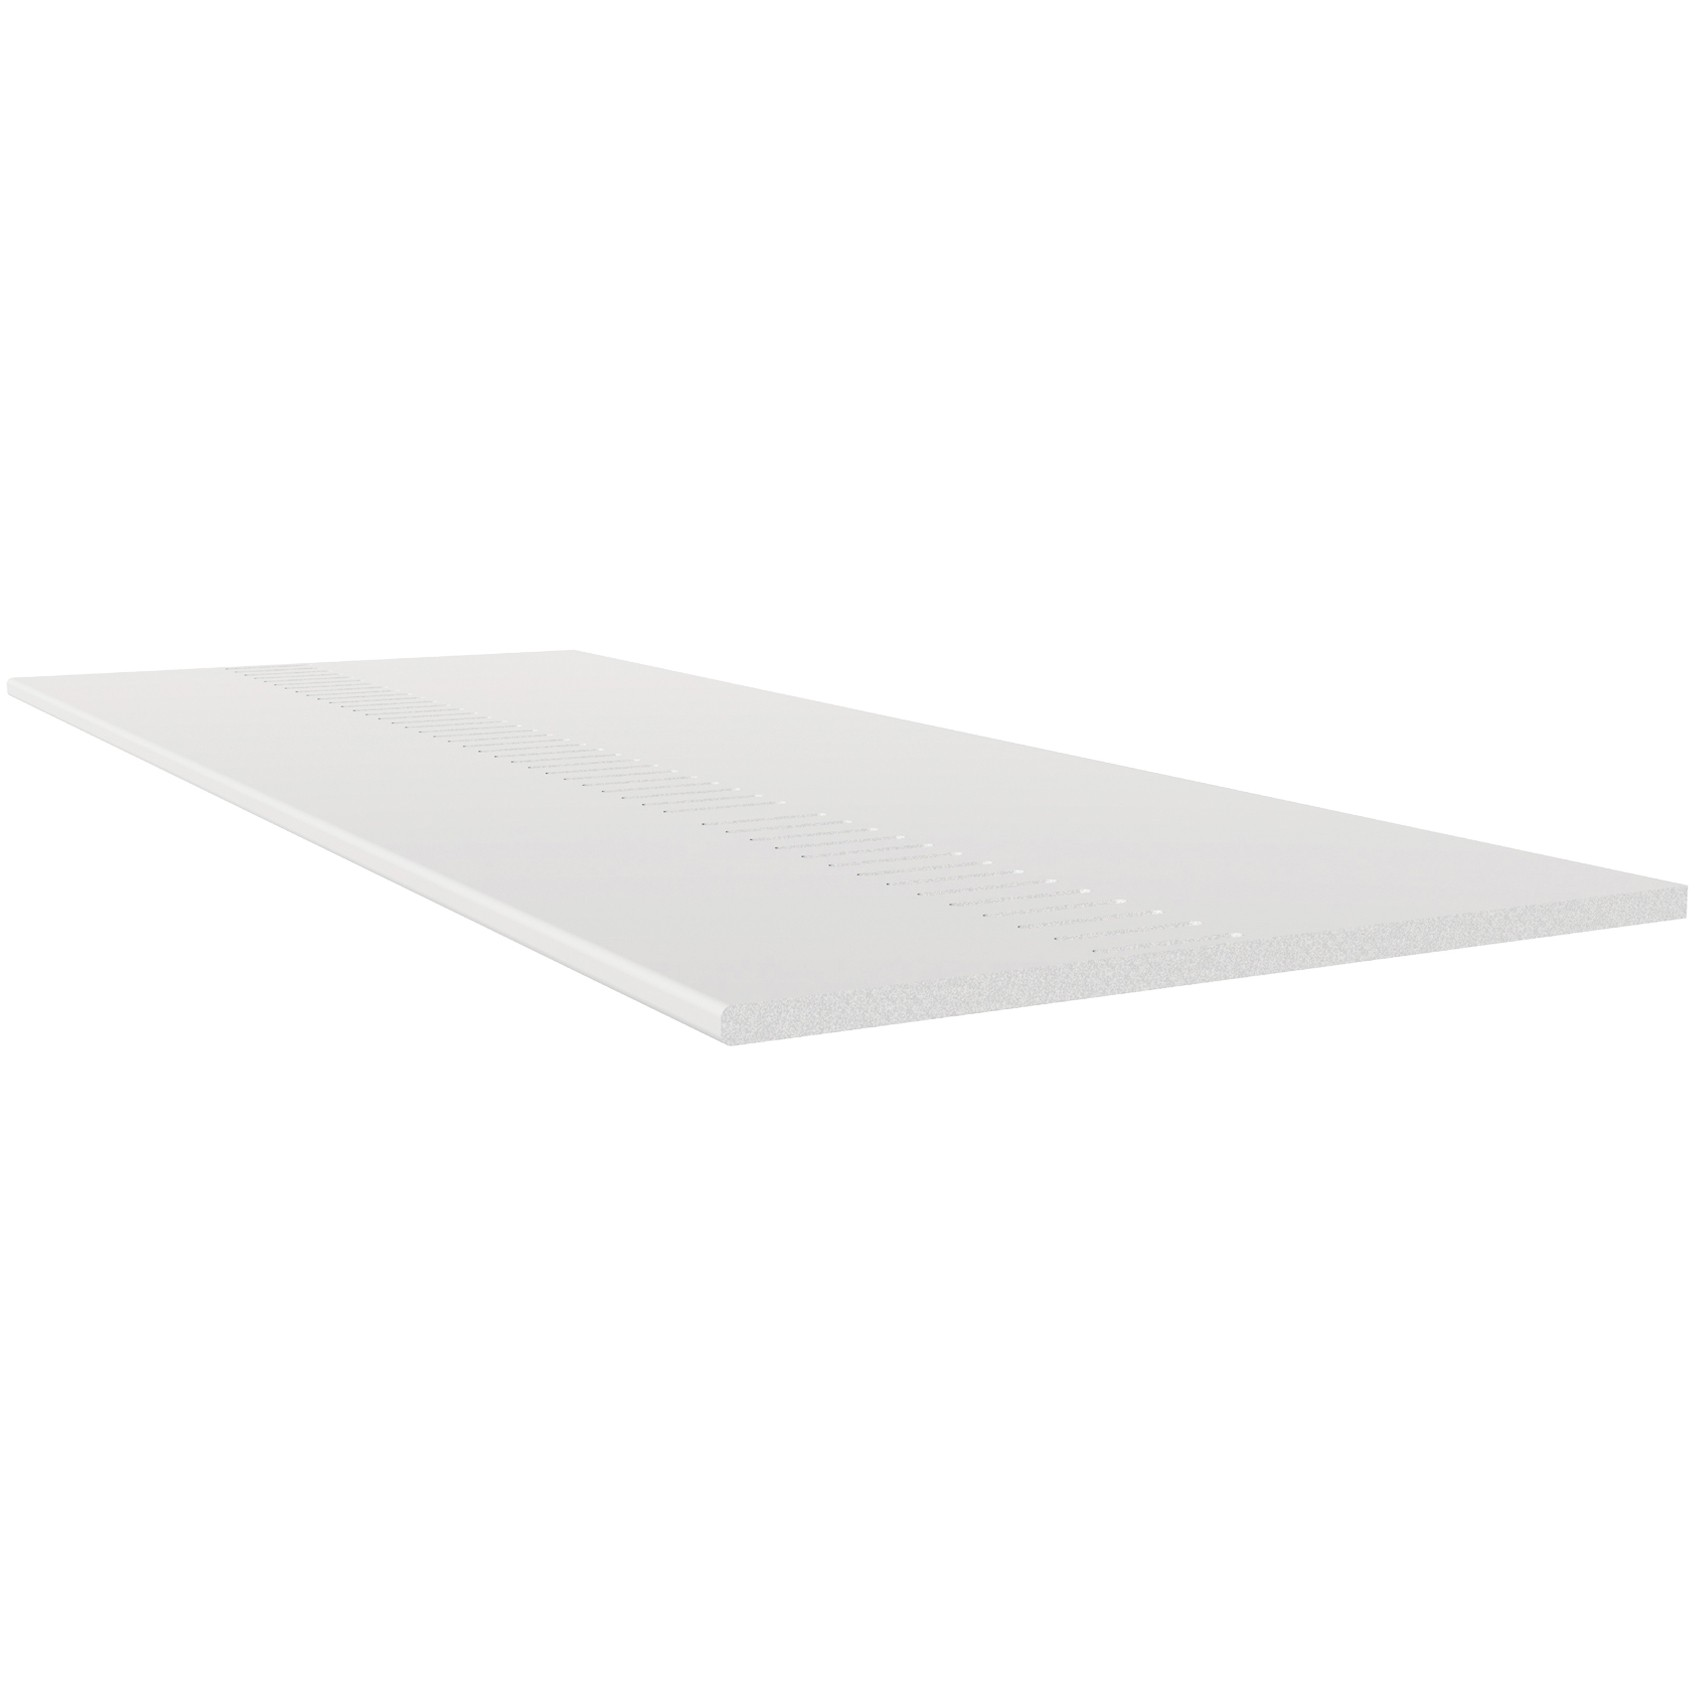 Freefoam Pre Vented 10mm Solid Soffit Board - White, 100mm, 5 metre